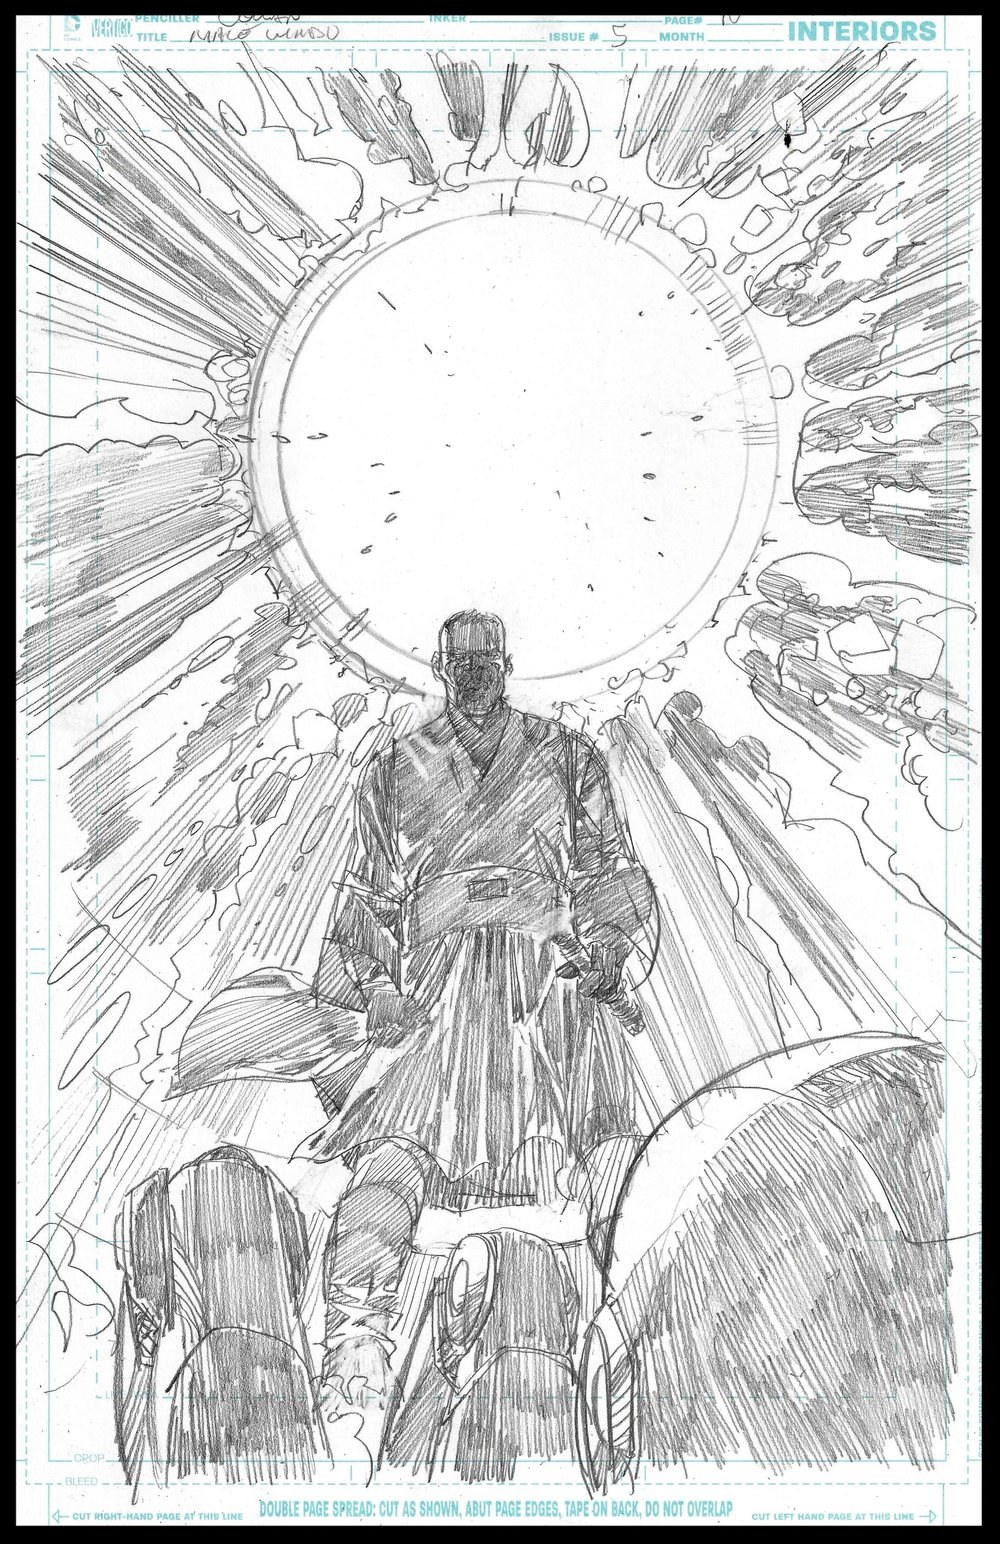 Mace Windu #5 - Page 10 - Pencils